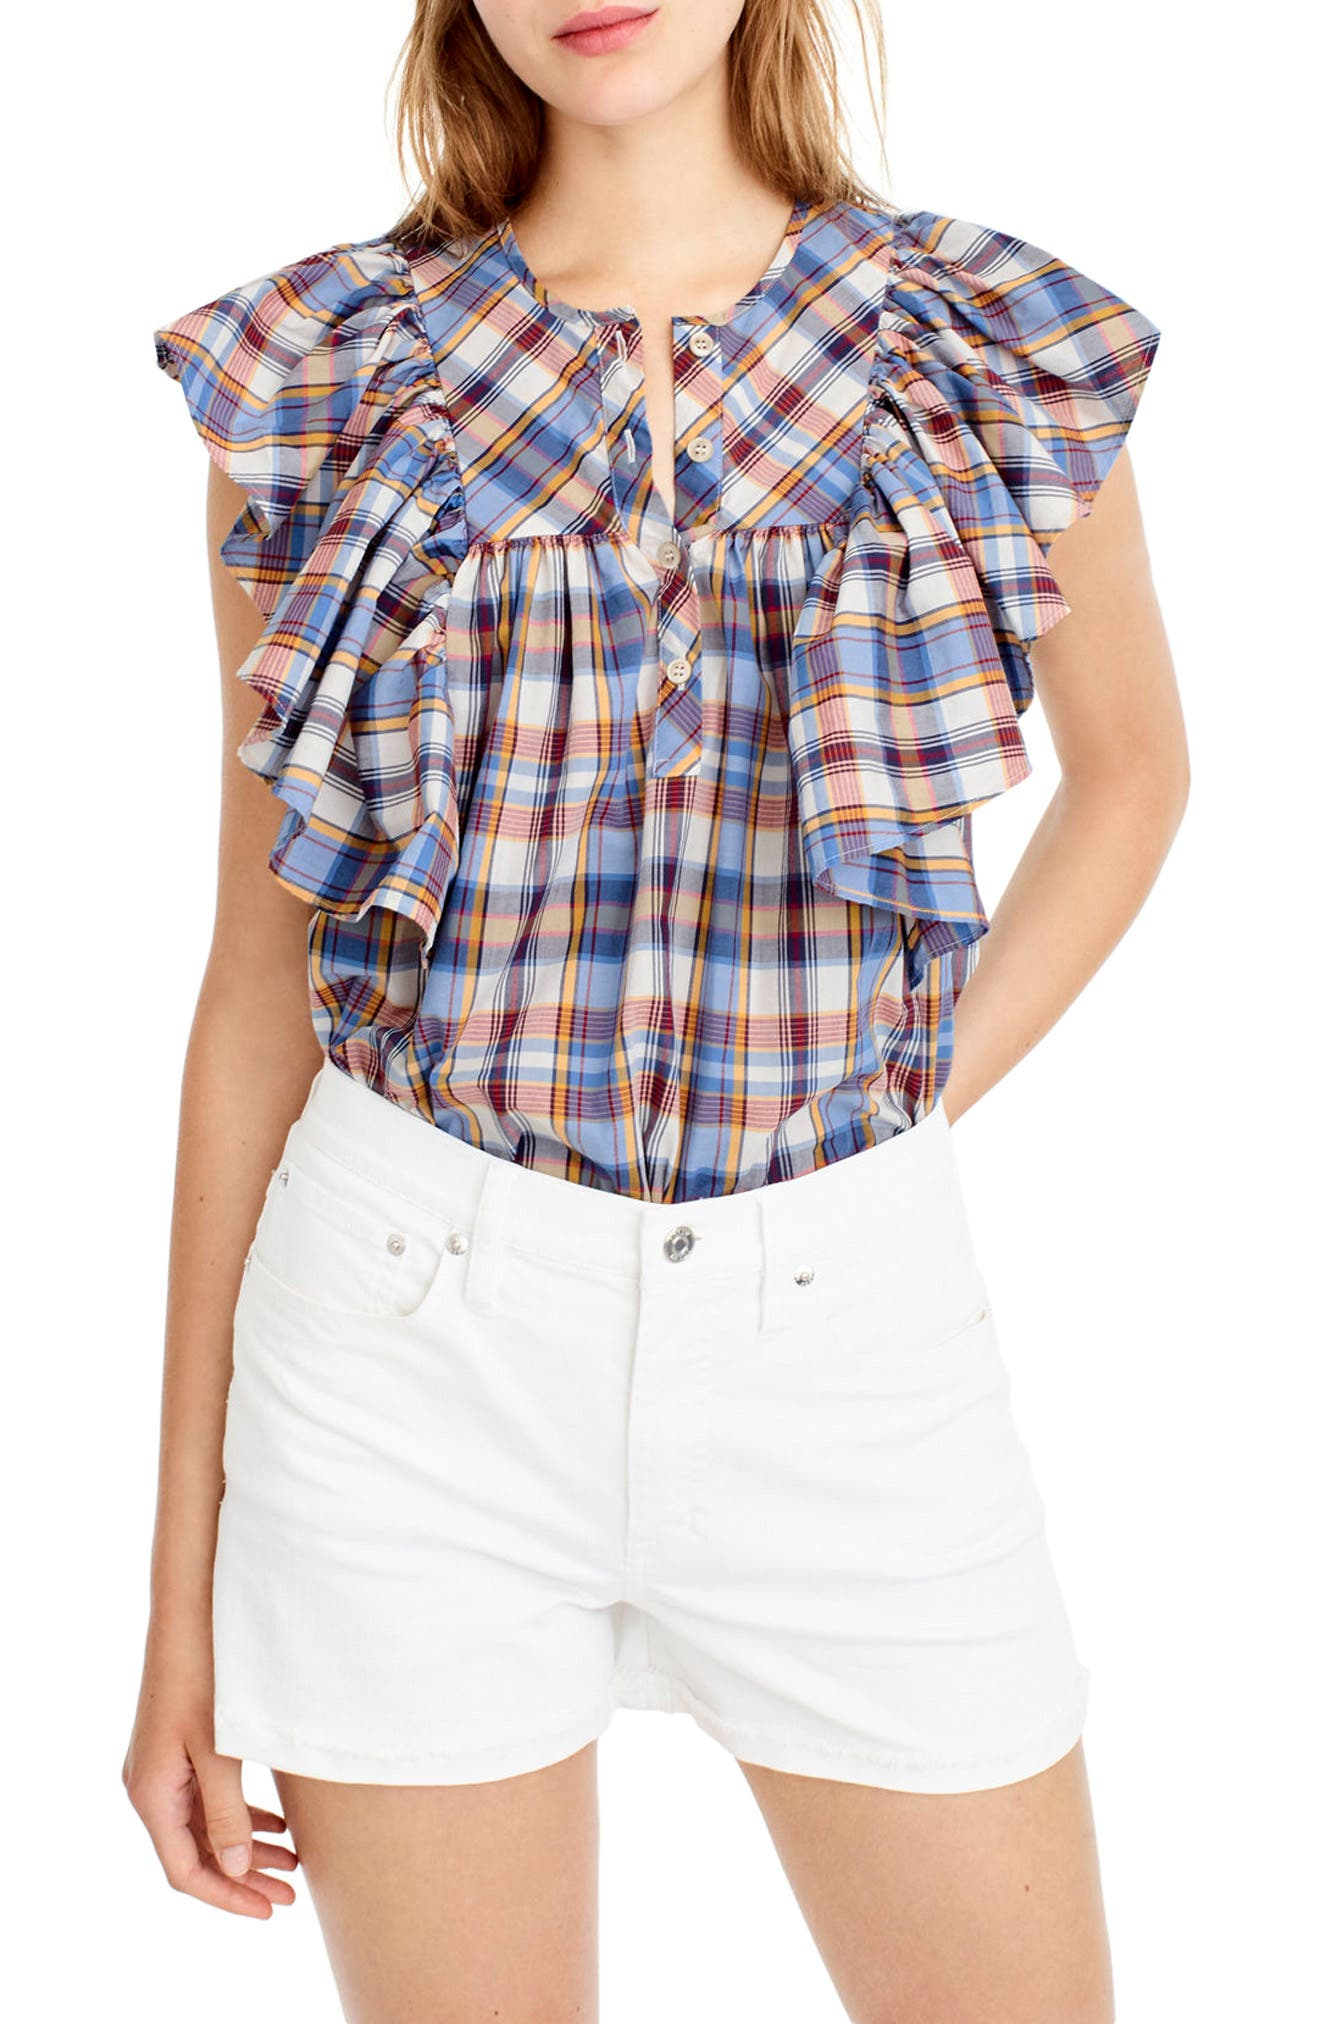 Main Image - J.Crew Danny Hula Plaid Top (Regular & Petite)